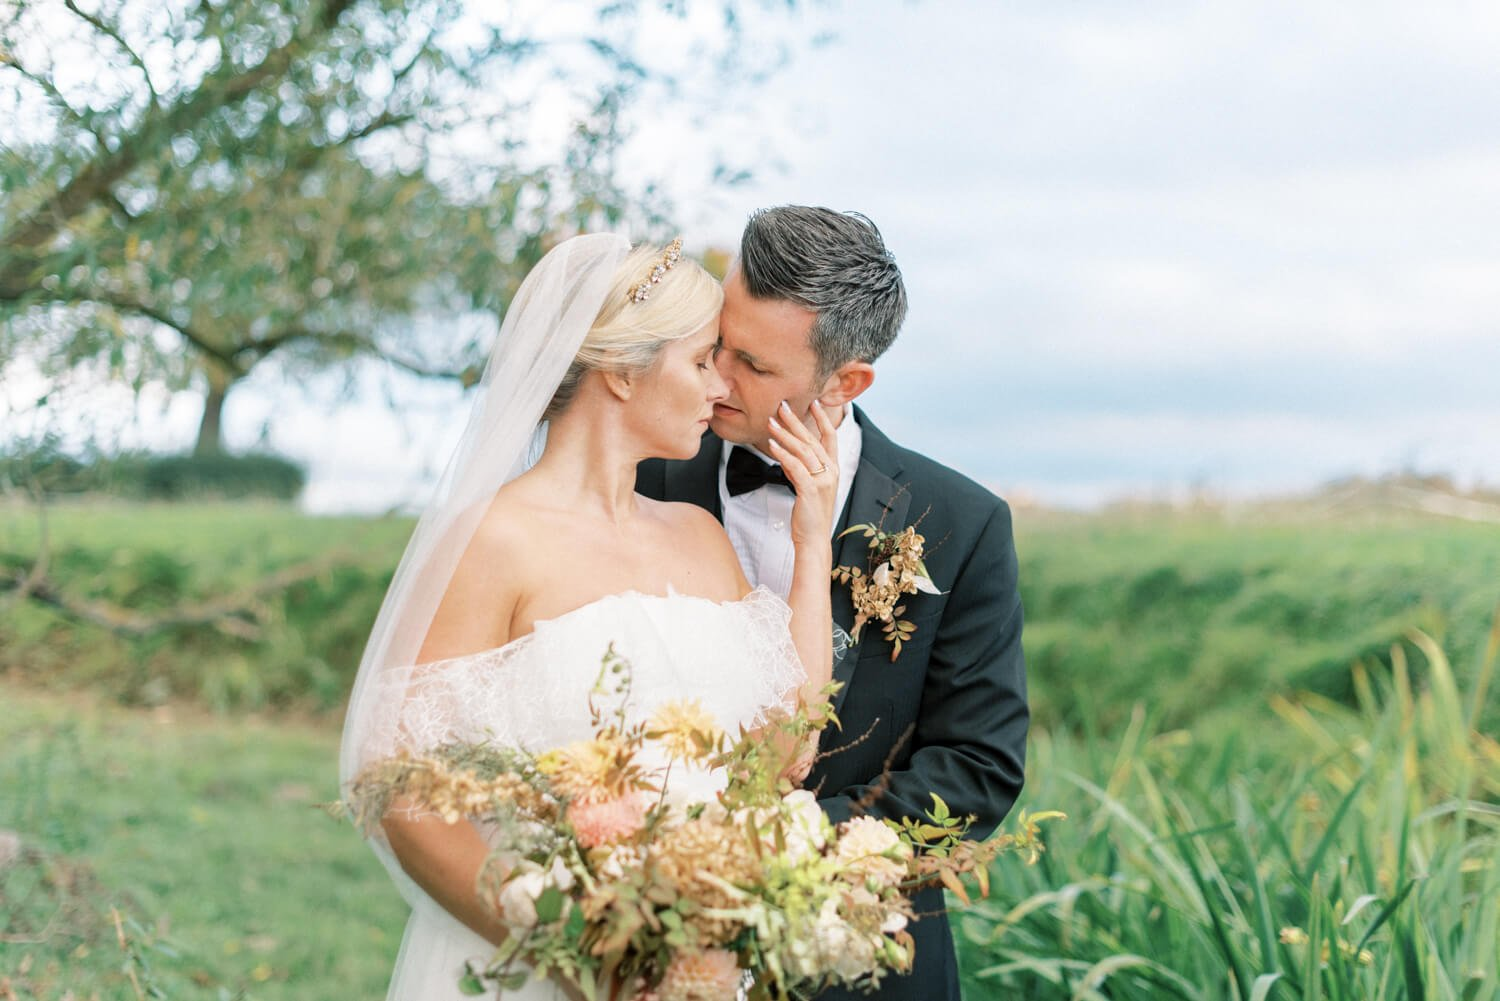 Wedding Photography FAQs In photo: English countryside wedding at a flower farm by Cristina Ilao Photography